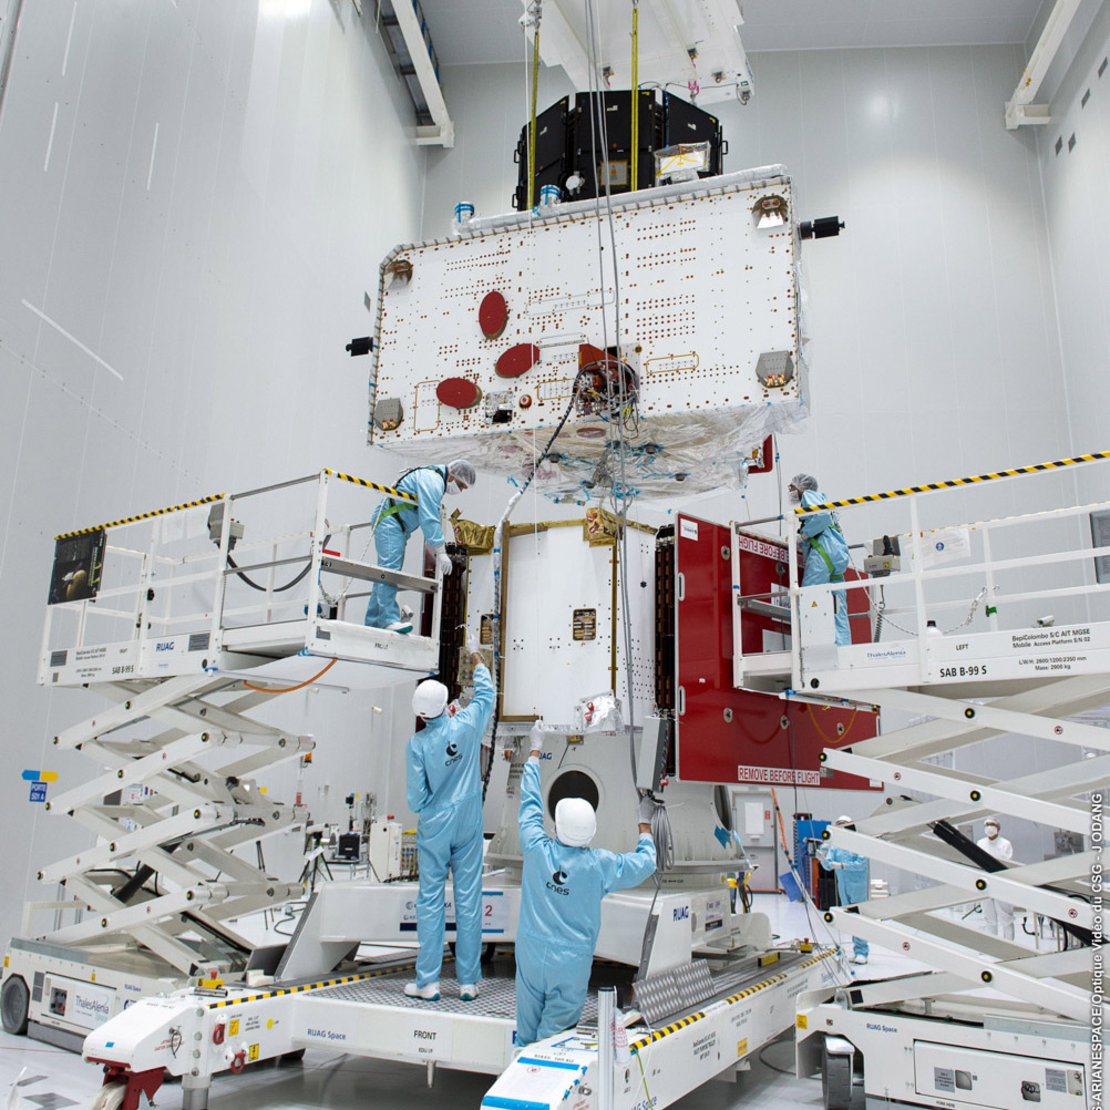 http://m.esa.int/var/esa/storage/images/esa_multimedia/images/2018/08/bepicolombo_stack_fit_check/17668877-1-eng-GB/BepiColombo_stack_fit_check_article_mob.jpg